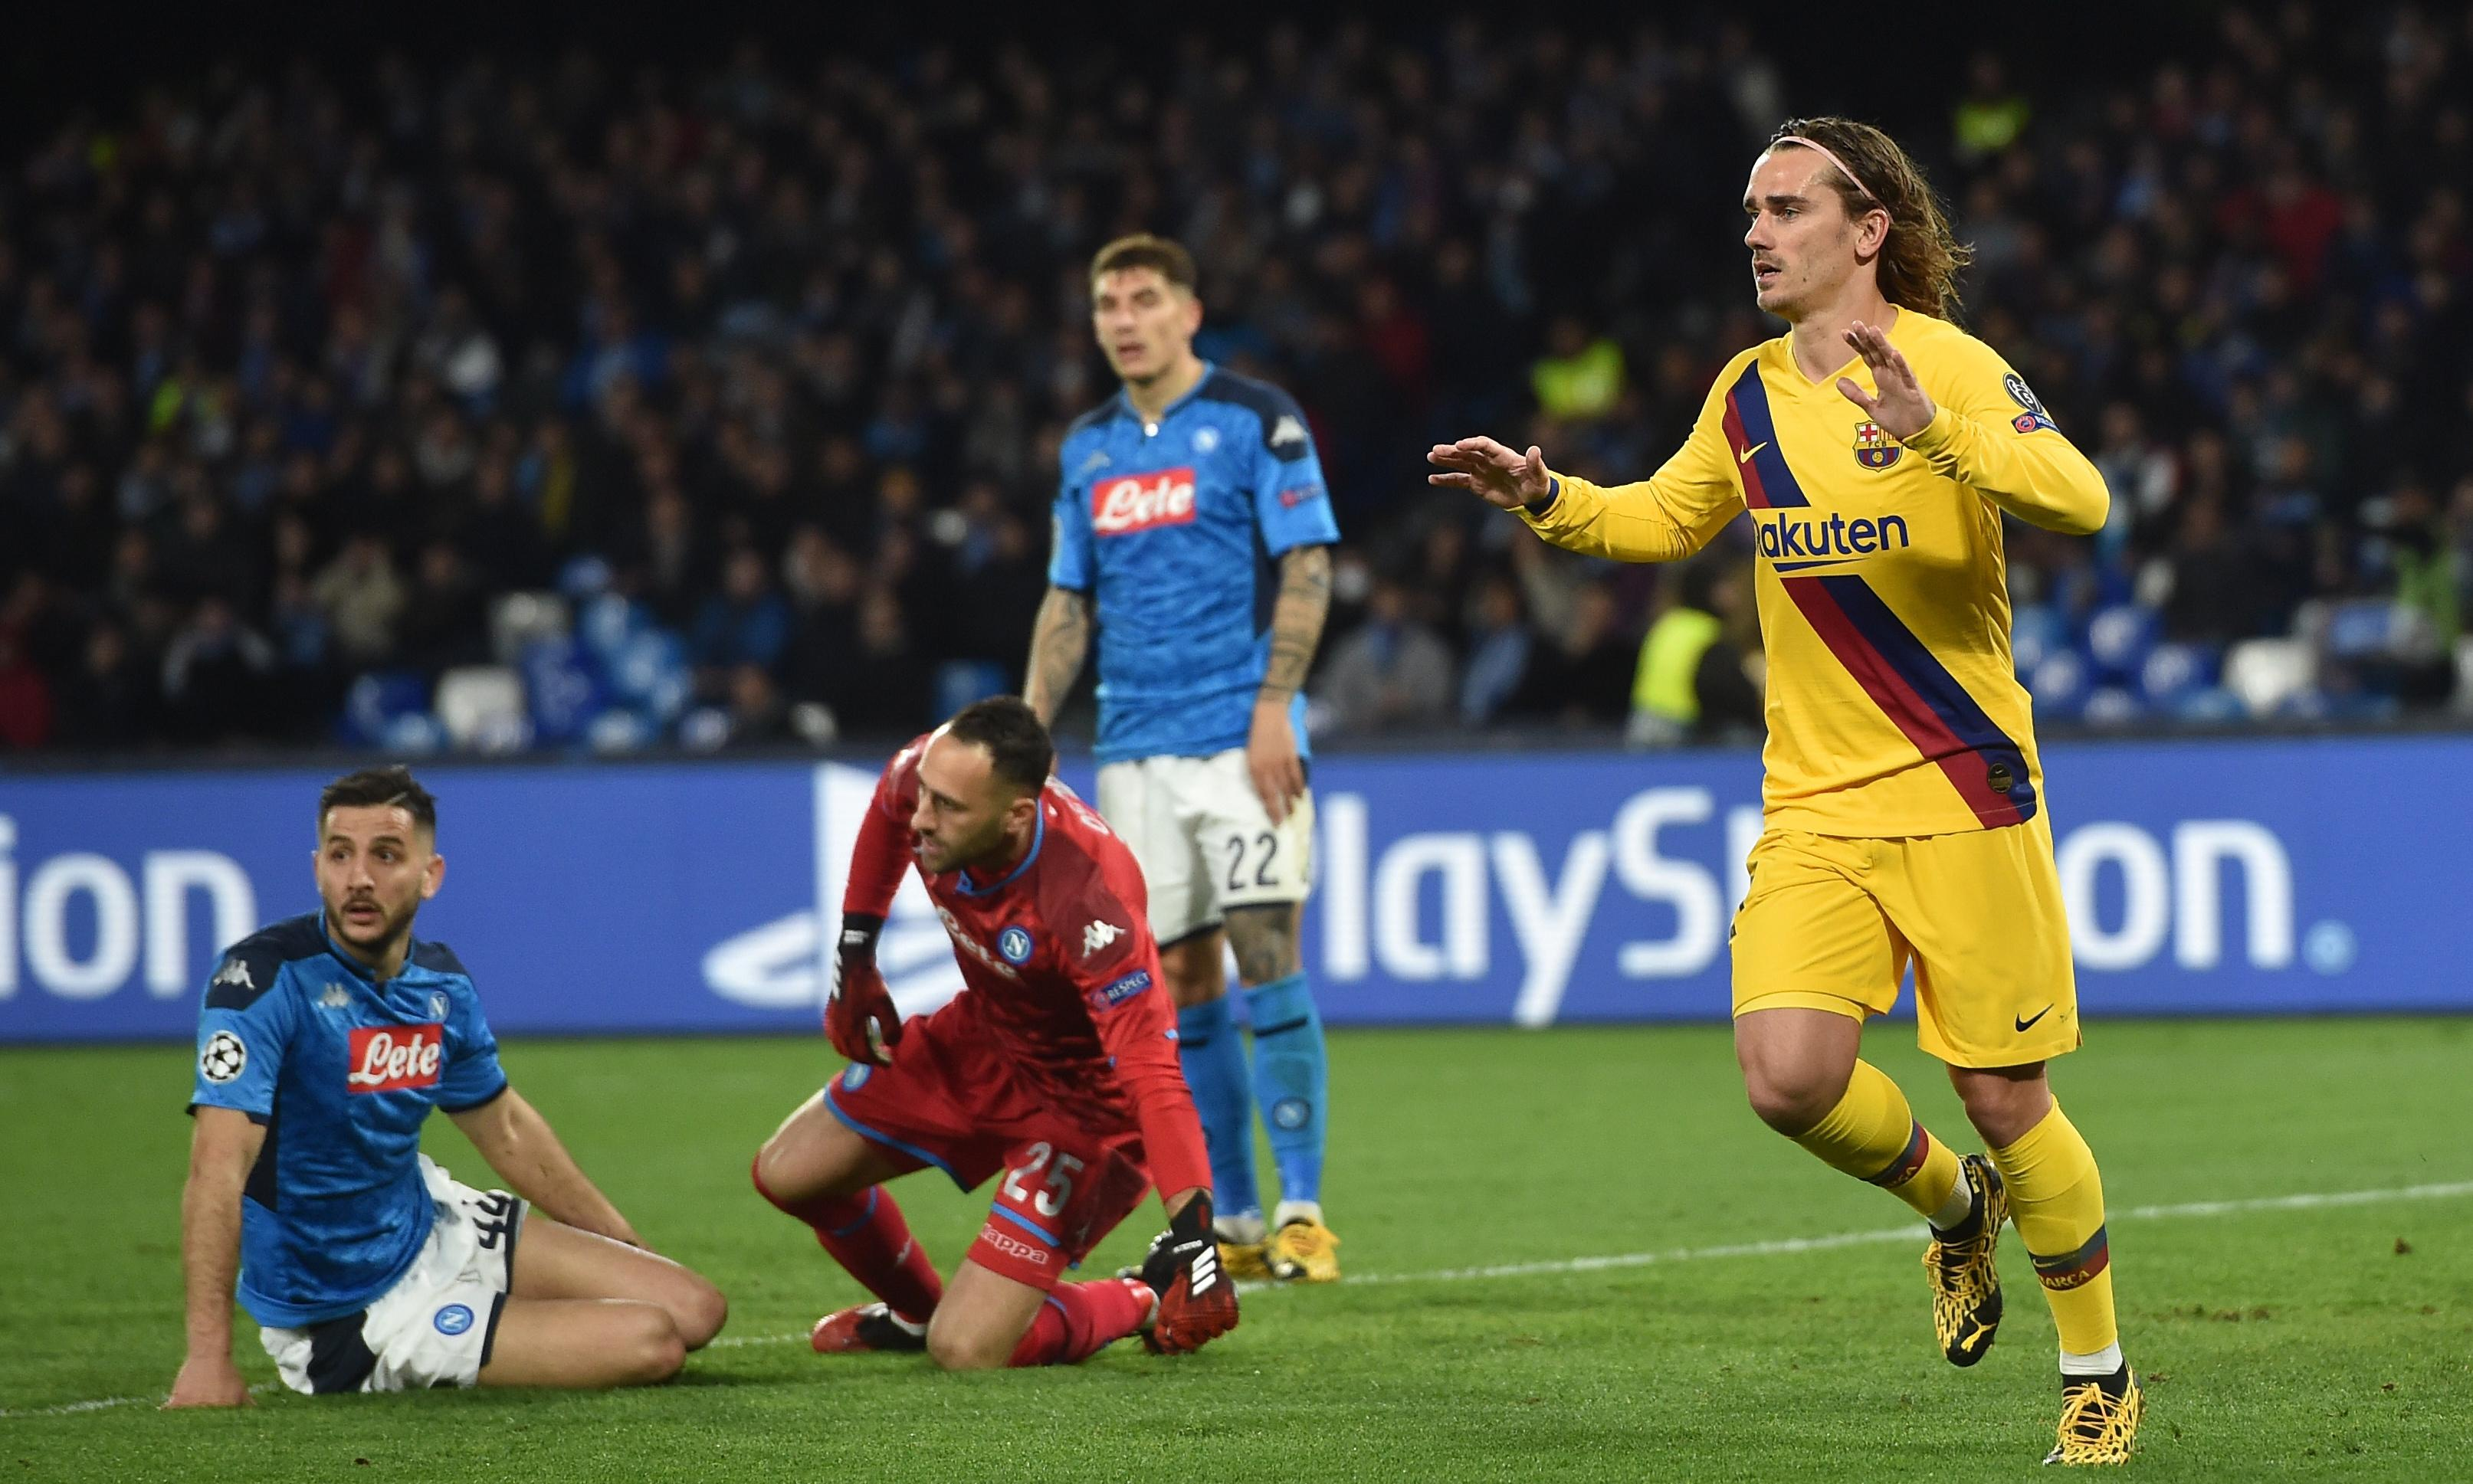 Griezmann rescues Barcelona after Mertens levels Napoli scoring record